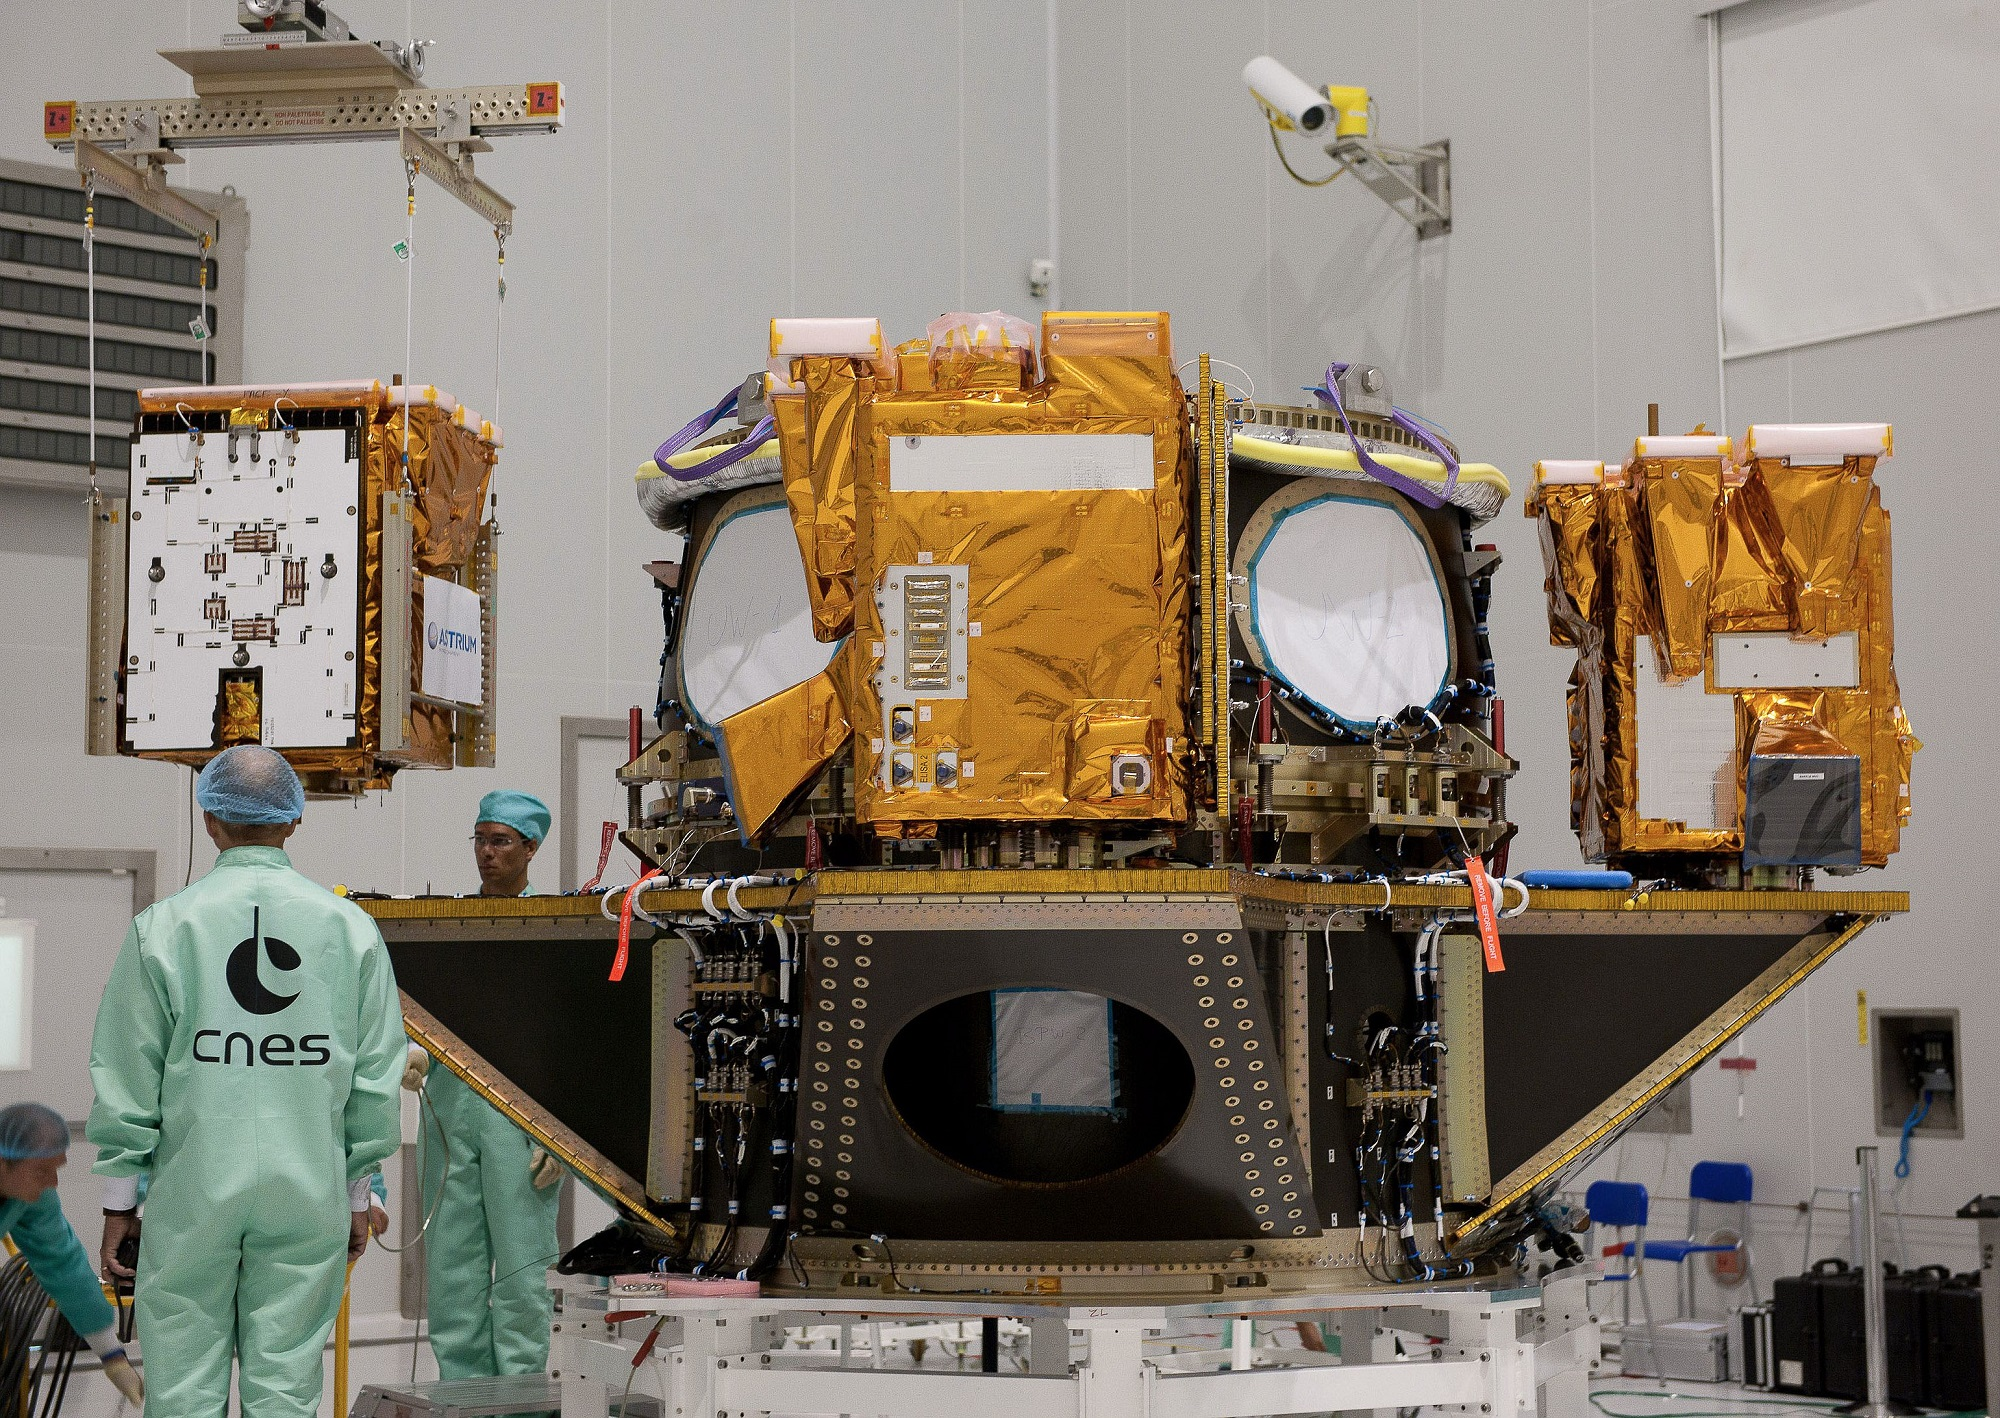 Foreign governments are approaching French satellites in orbit, says space commander